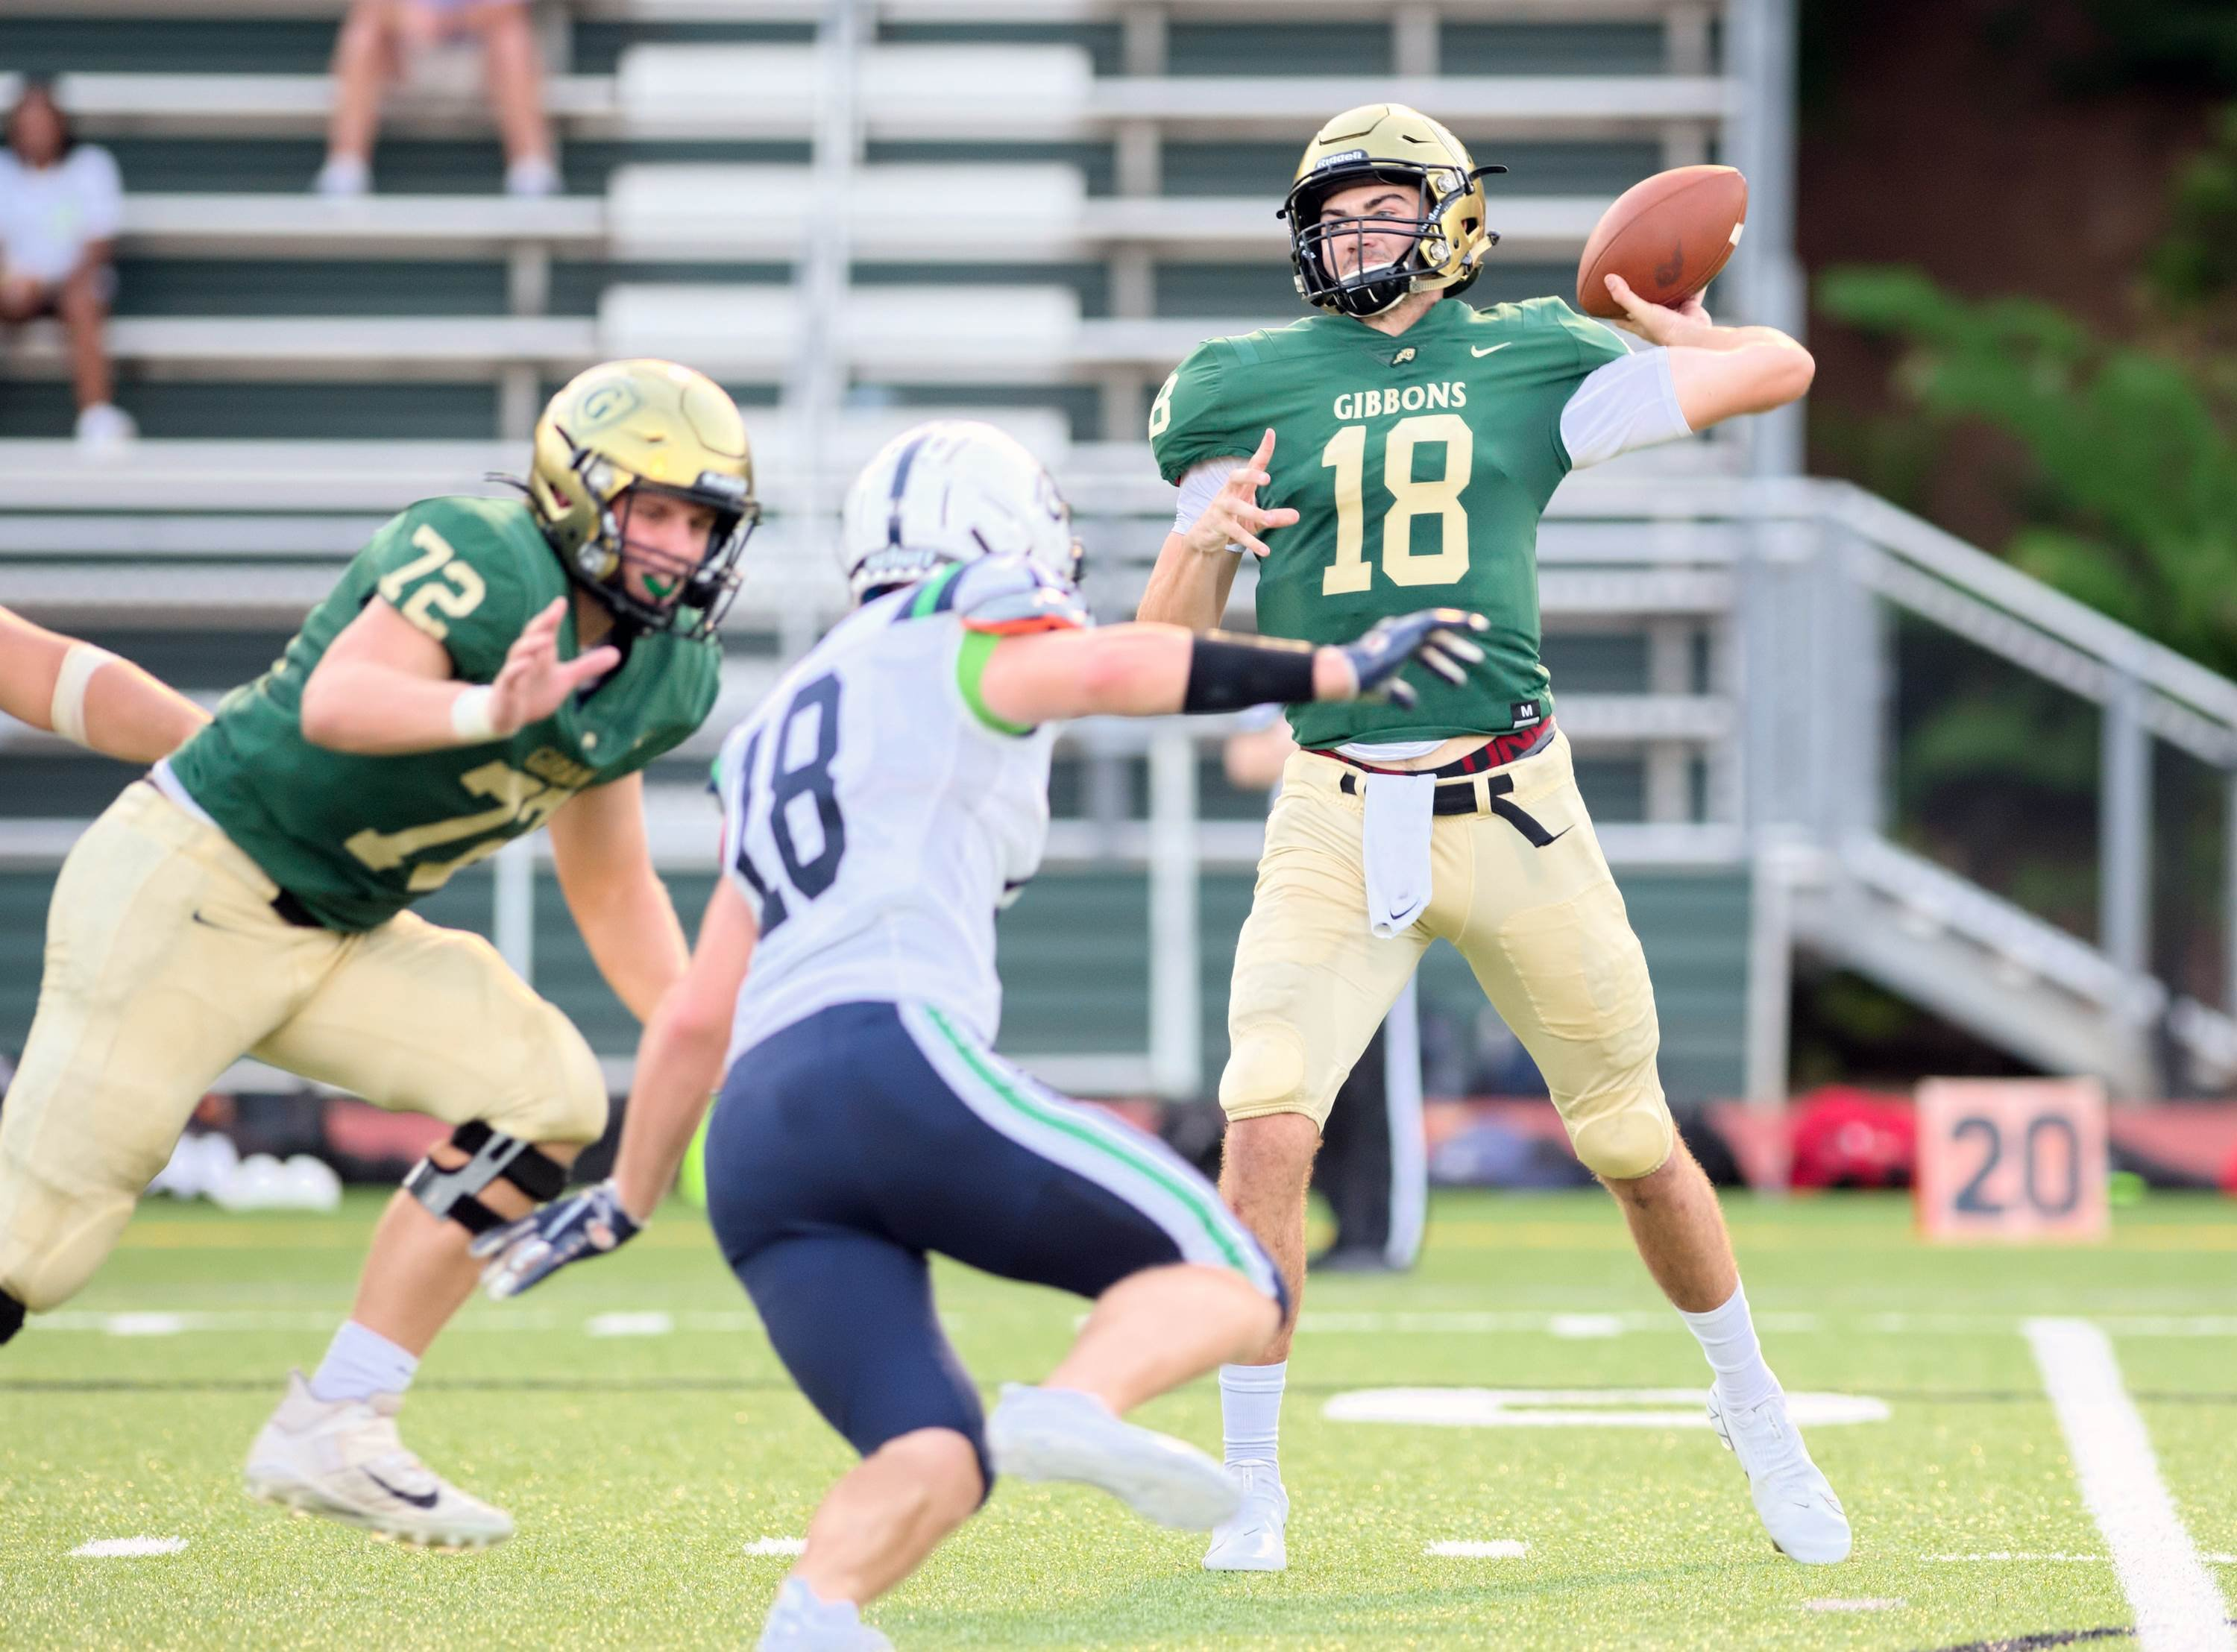 Cardinal Gibbons faces Richmond this week in a big game.